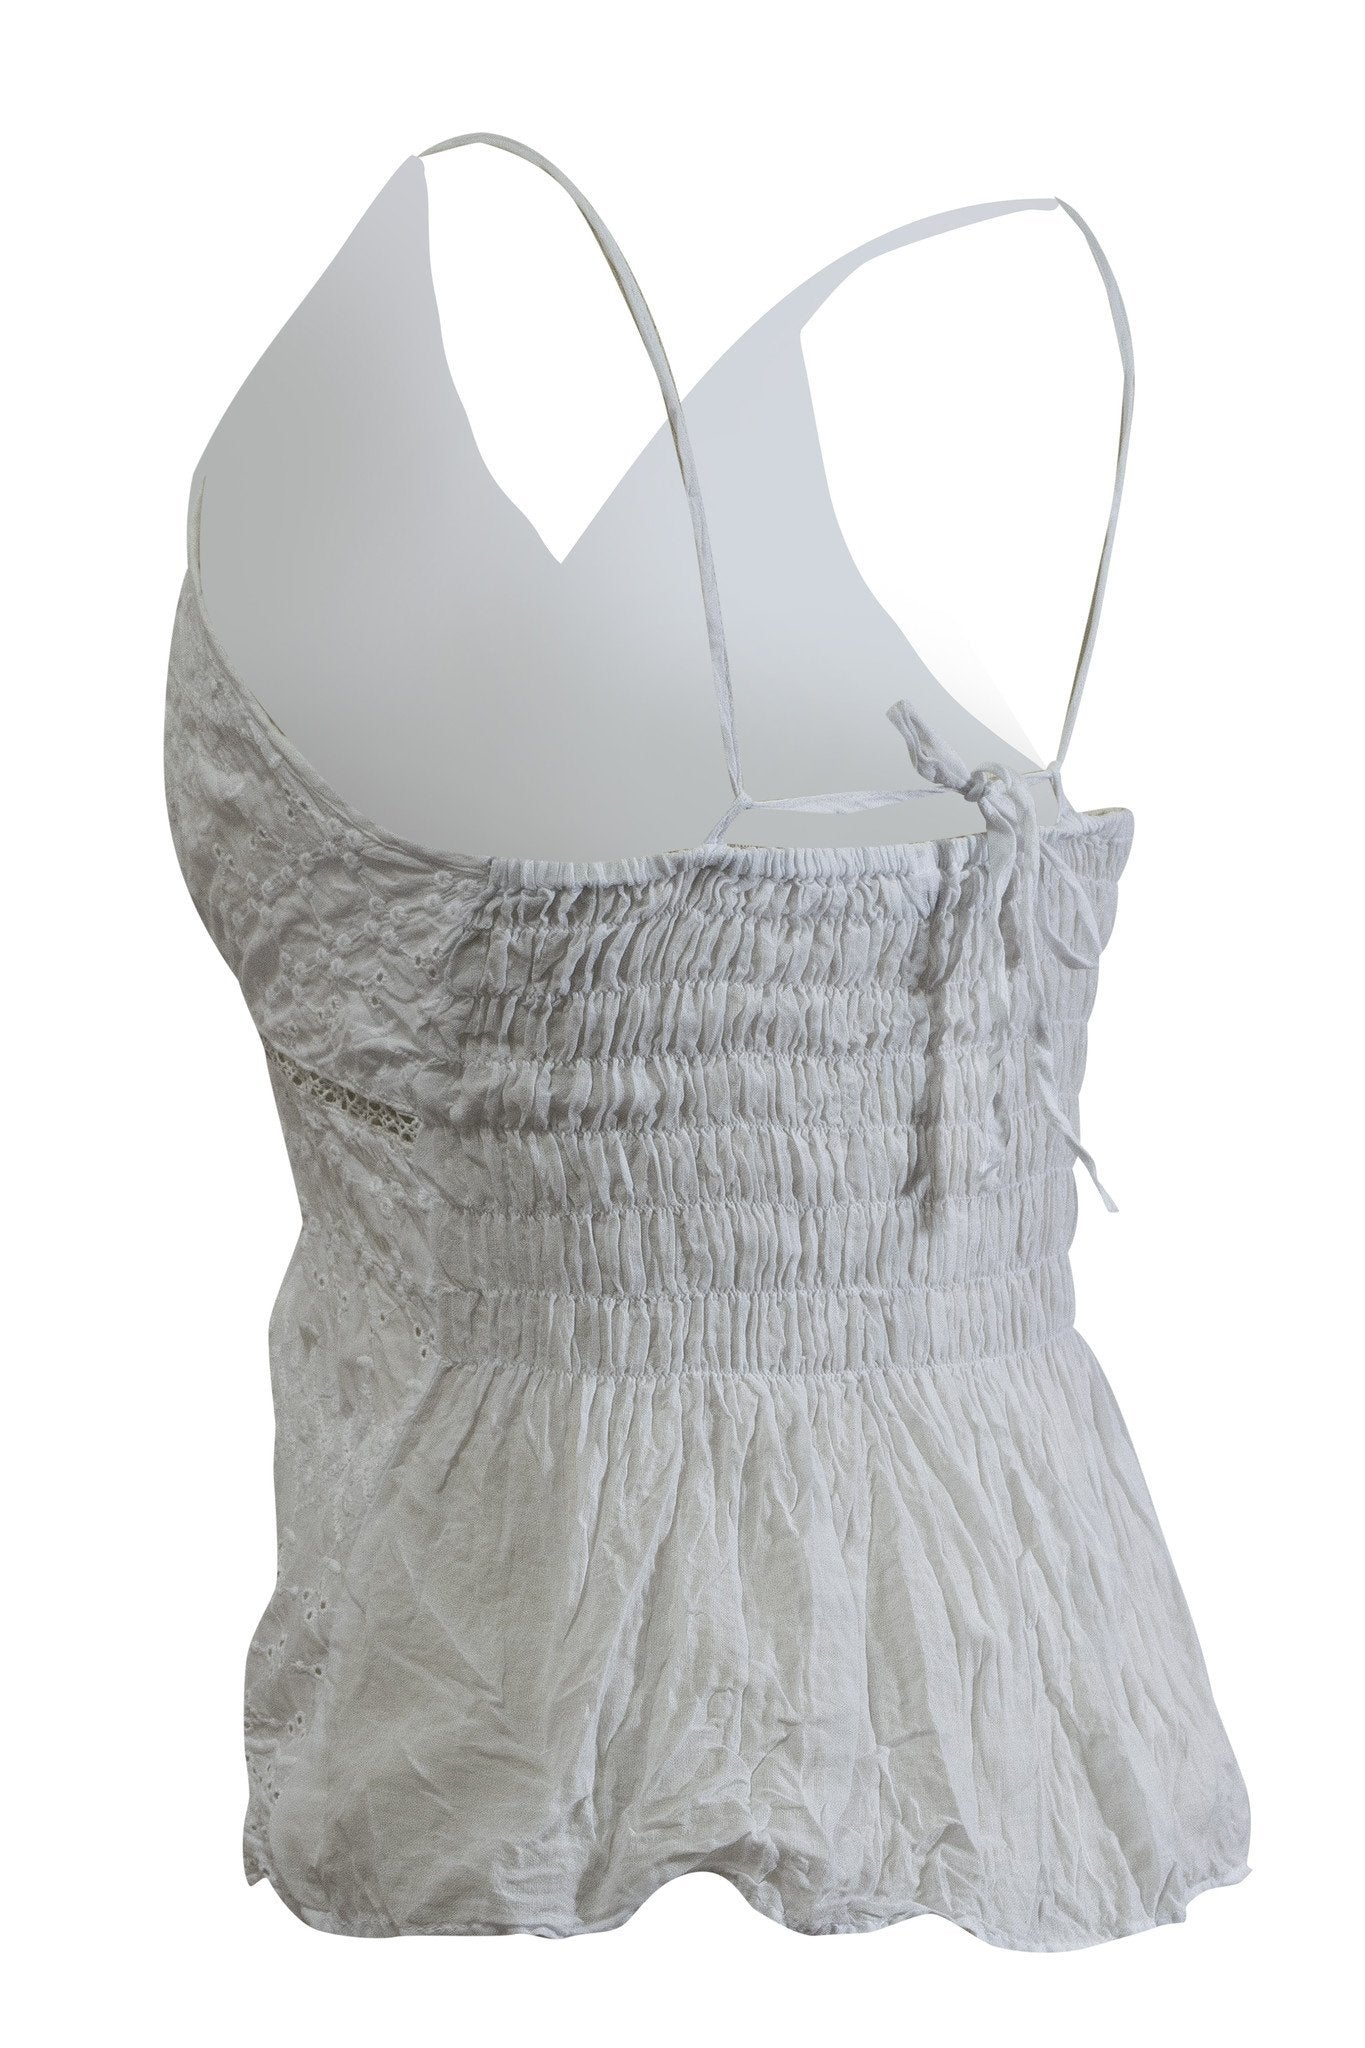 Cotton Strap Camisole Top V Neck White - CCCollections